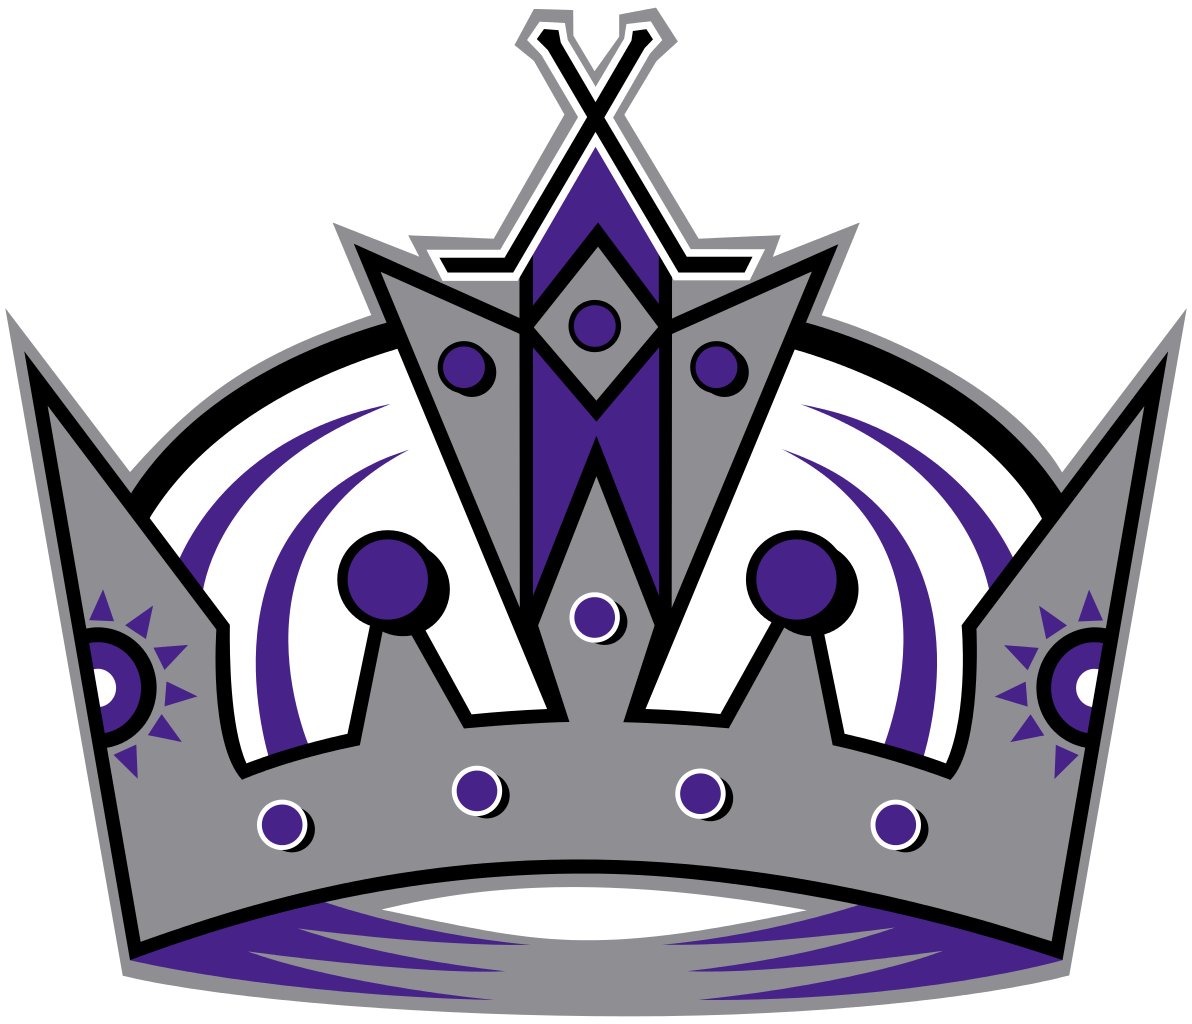 Free Kings, Download Free Clip Art, Free Clip Art on Clipart.